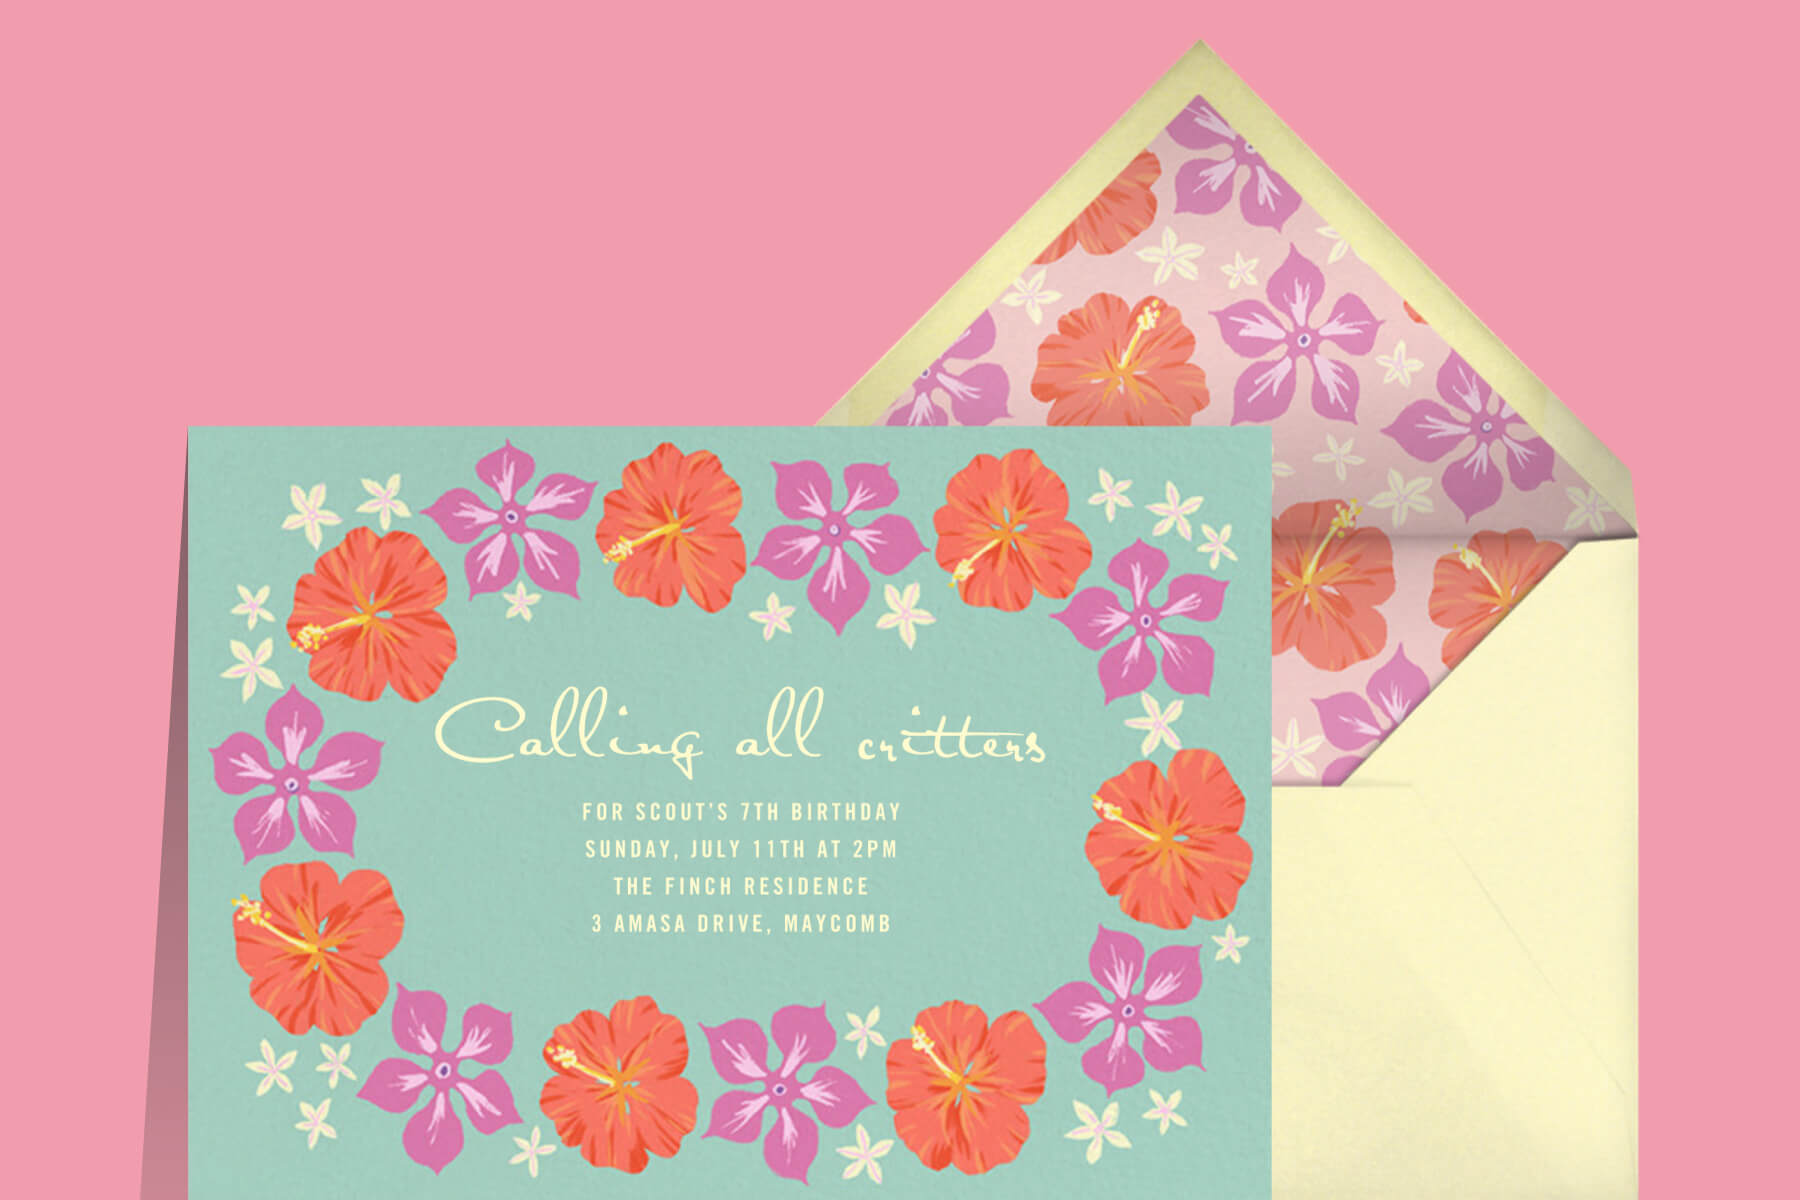 Birthday party invitation with red and purple hibiscus flowers.